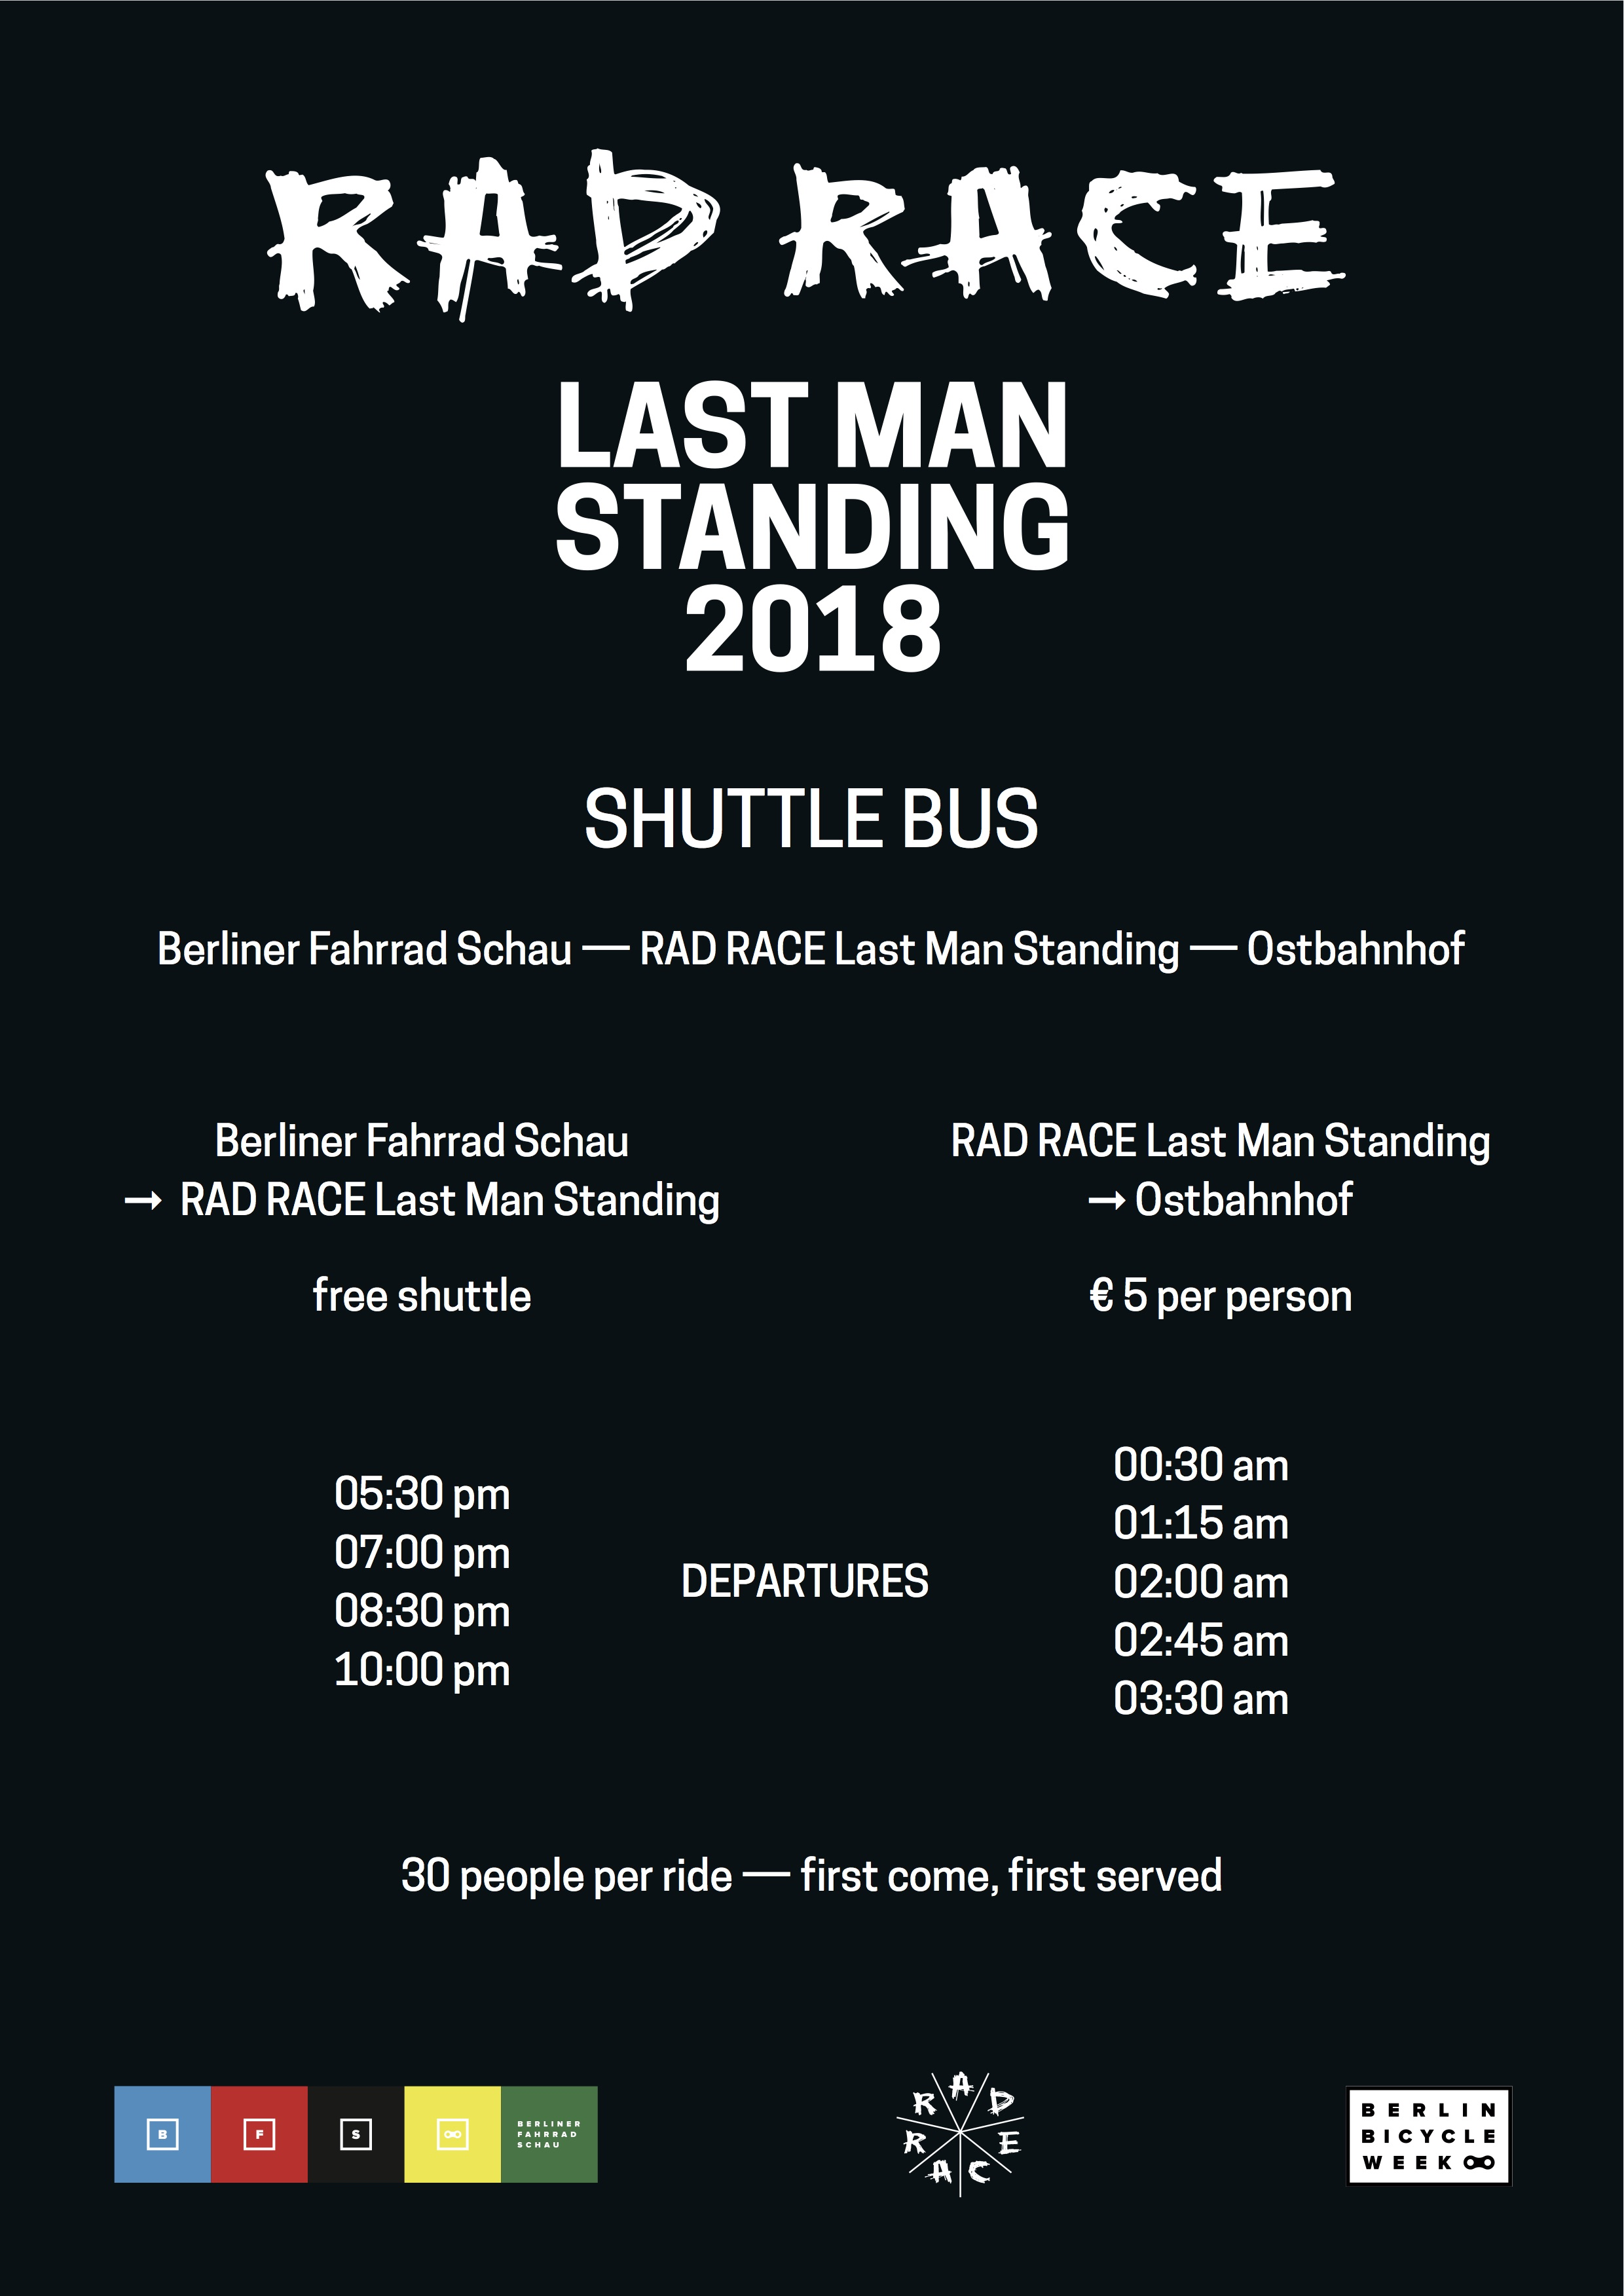 rad race bus shuttle berlin 2018